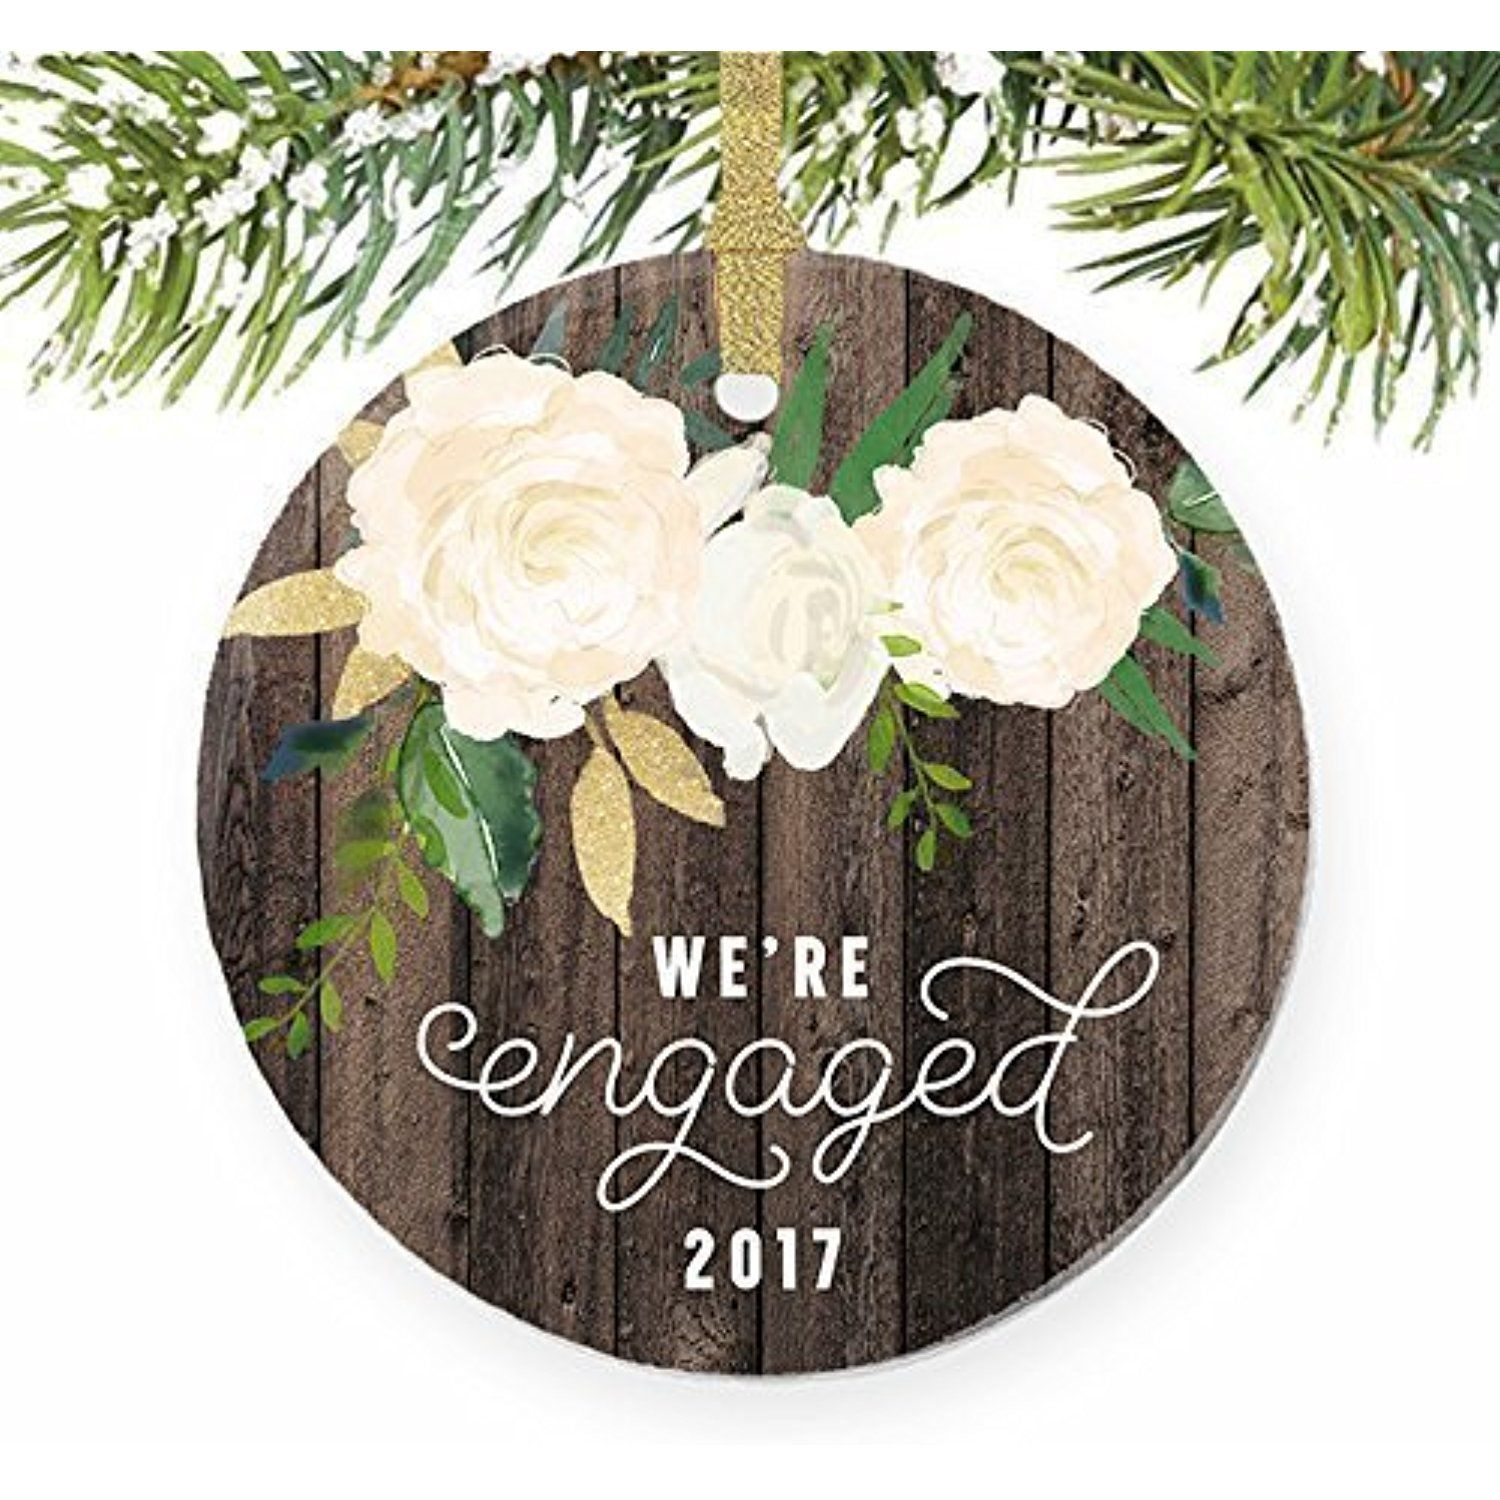 Weure engaged christmas ornament gifts for the bride to be